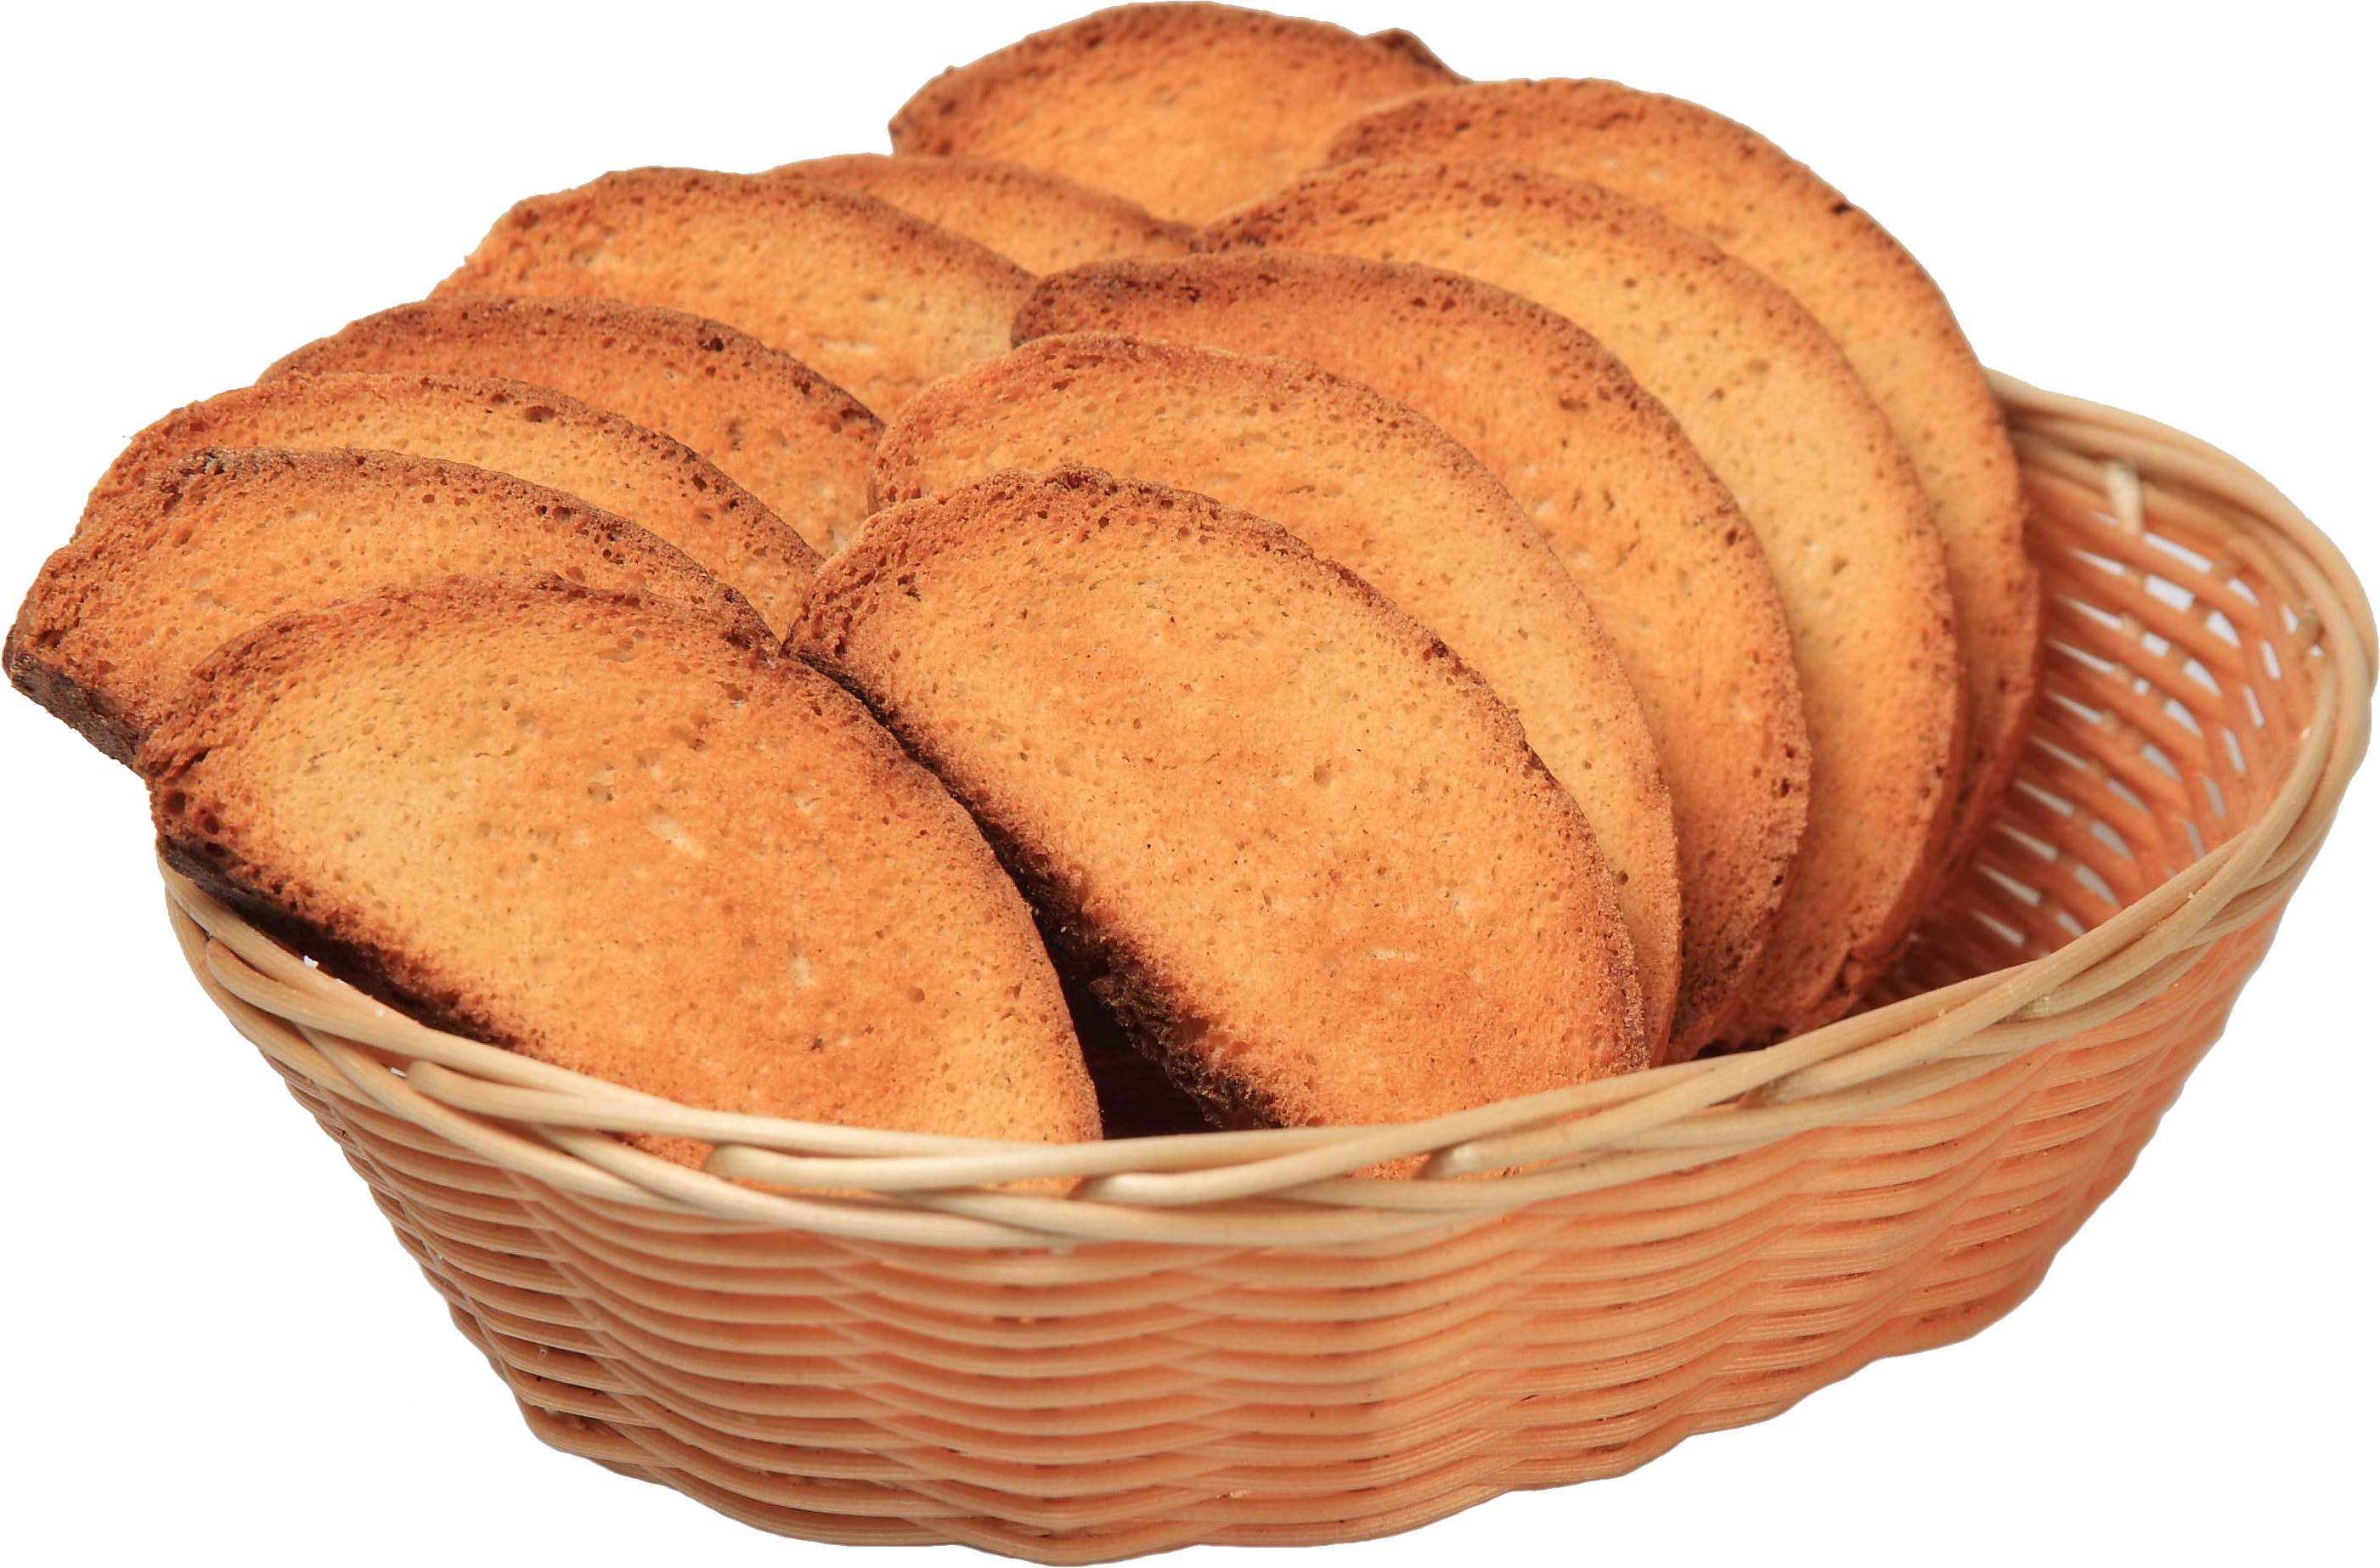 Rusk PNG - Bread HD PNG